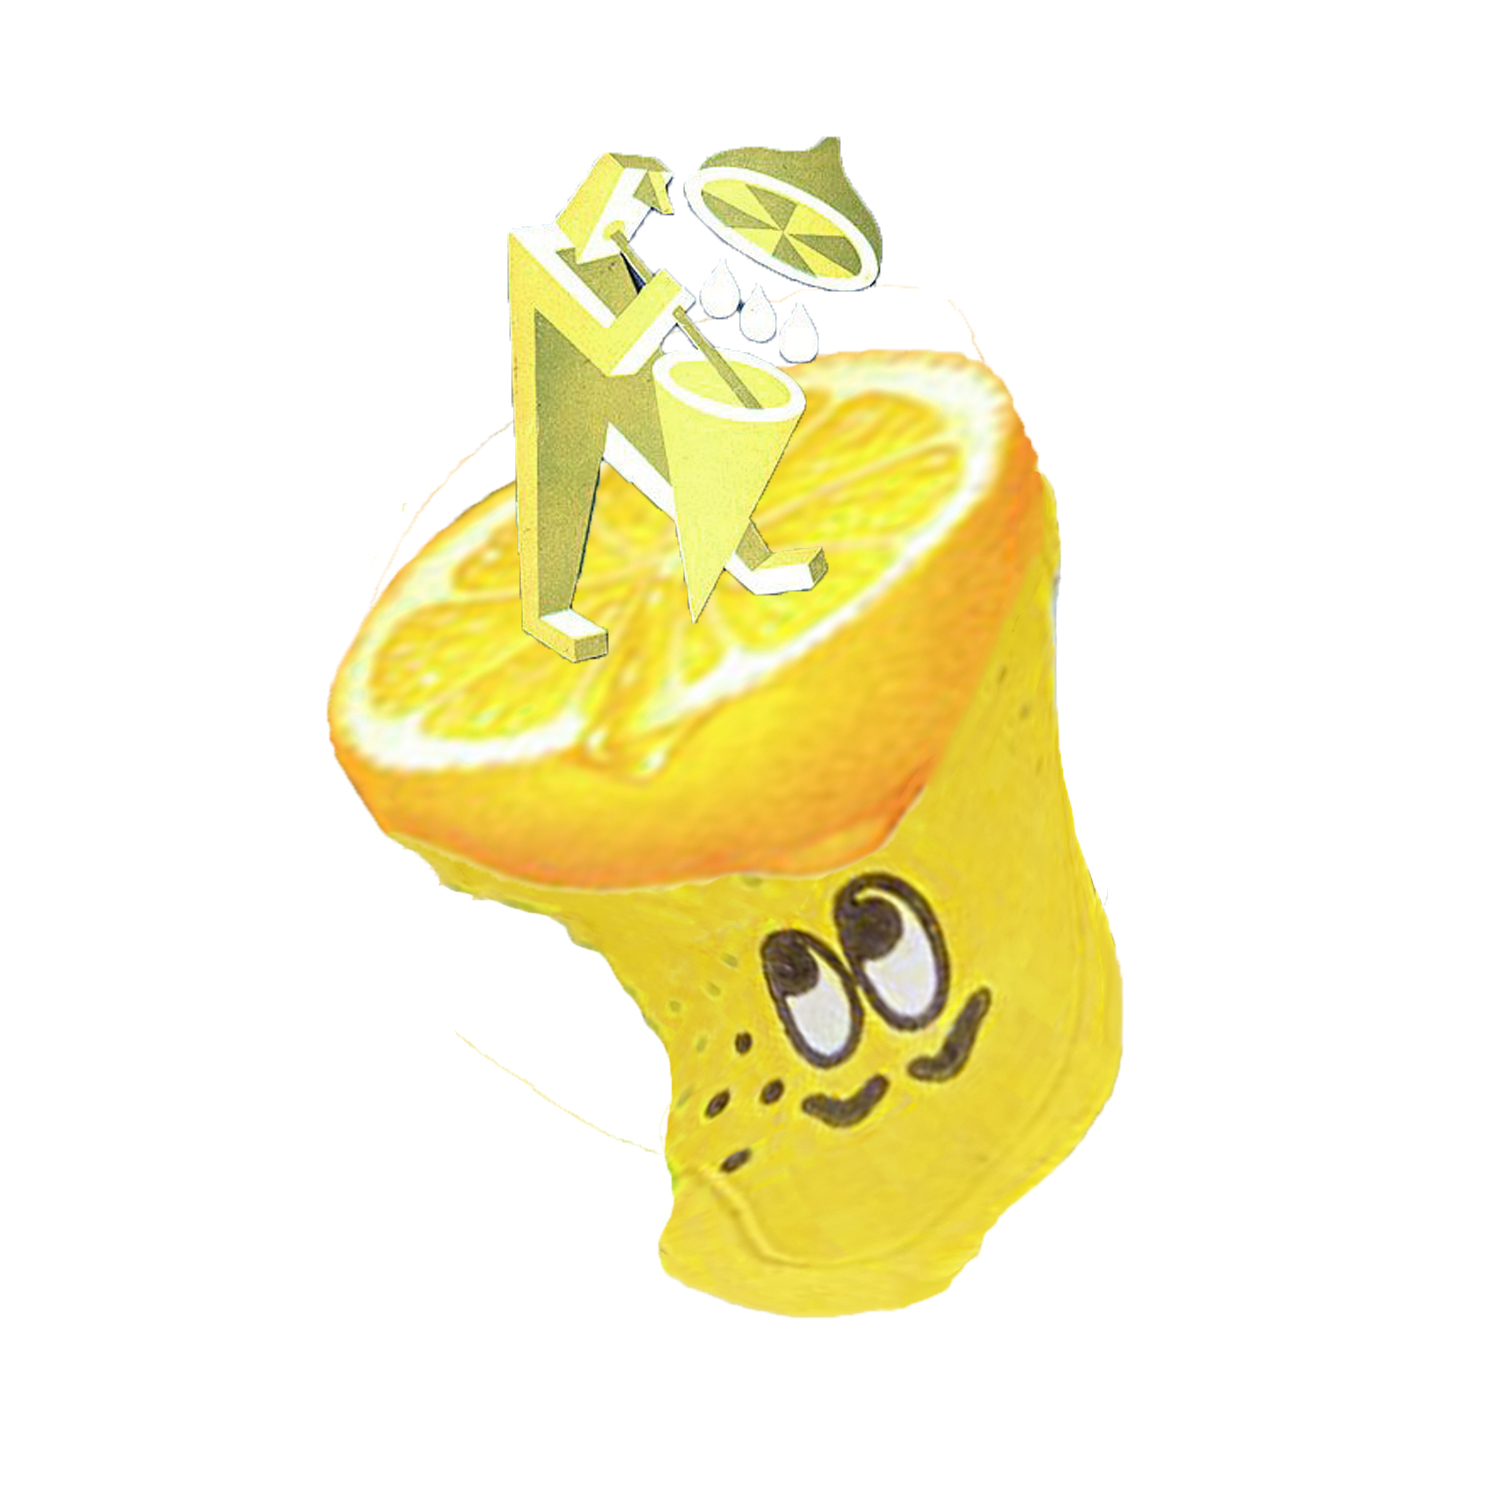 JUICE THE LEMON